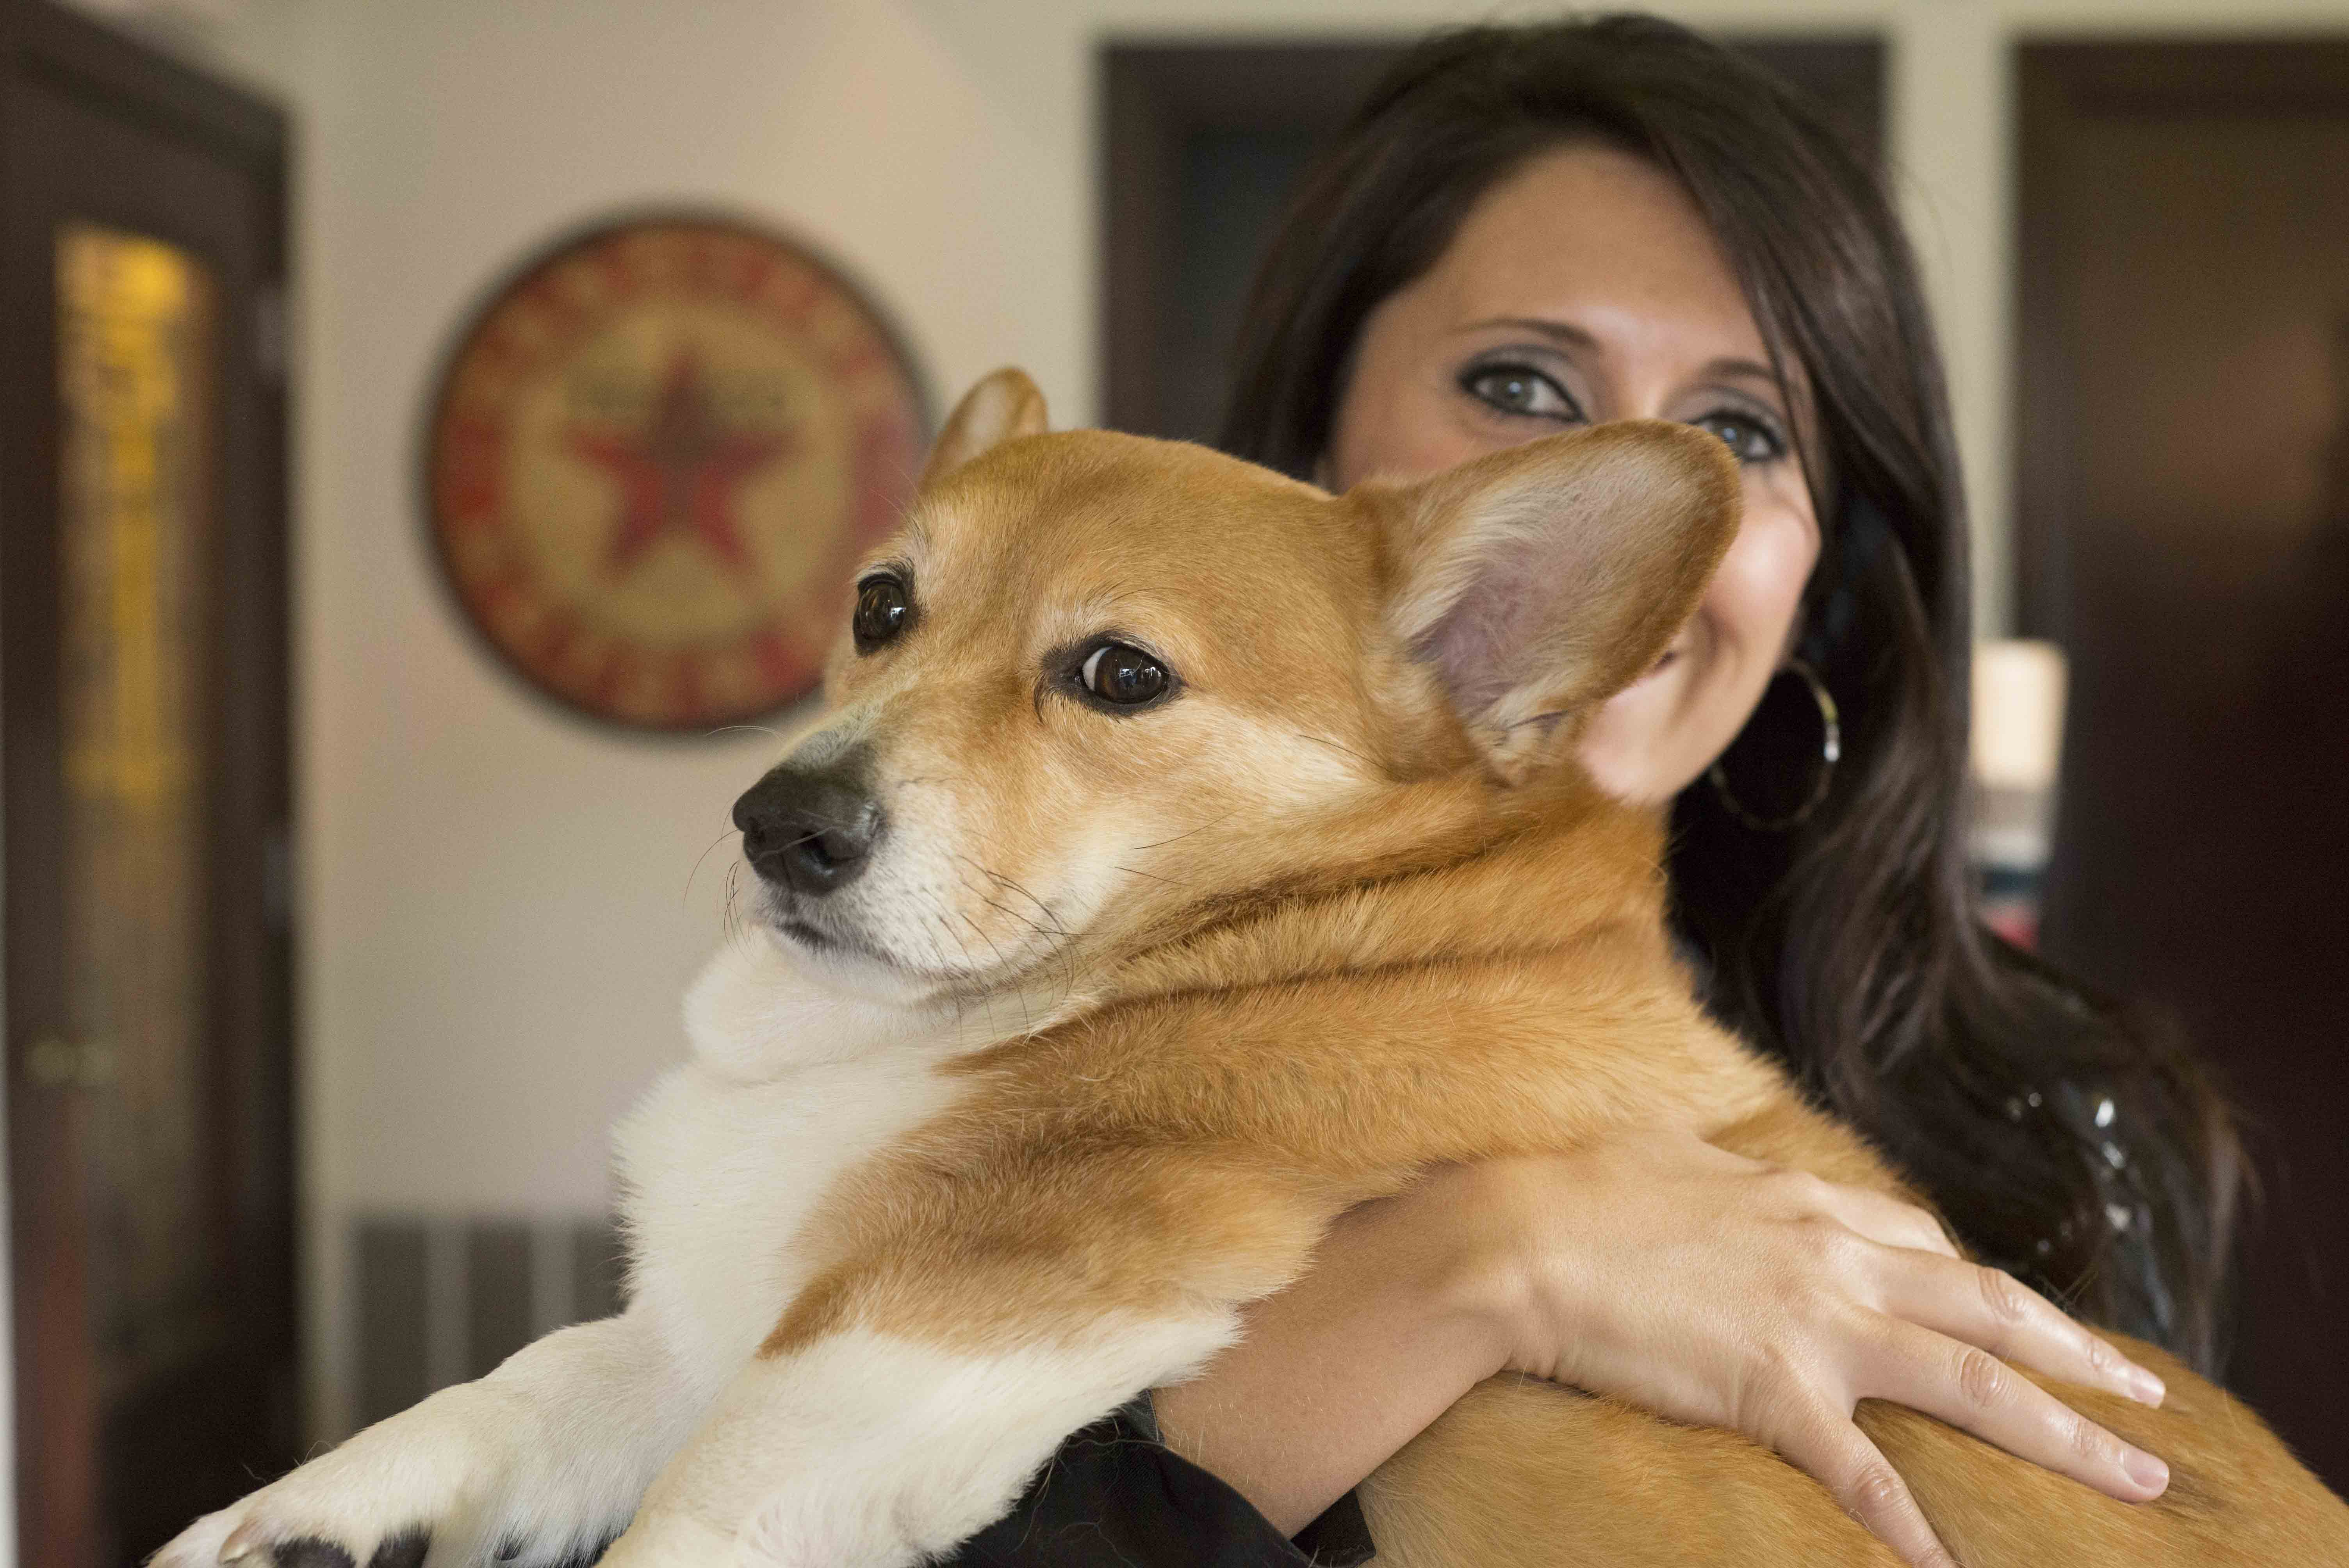 Owner Suzie Pruitt holder her corgi Huey at Ely Road Boutique.